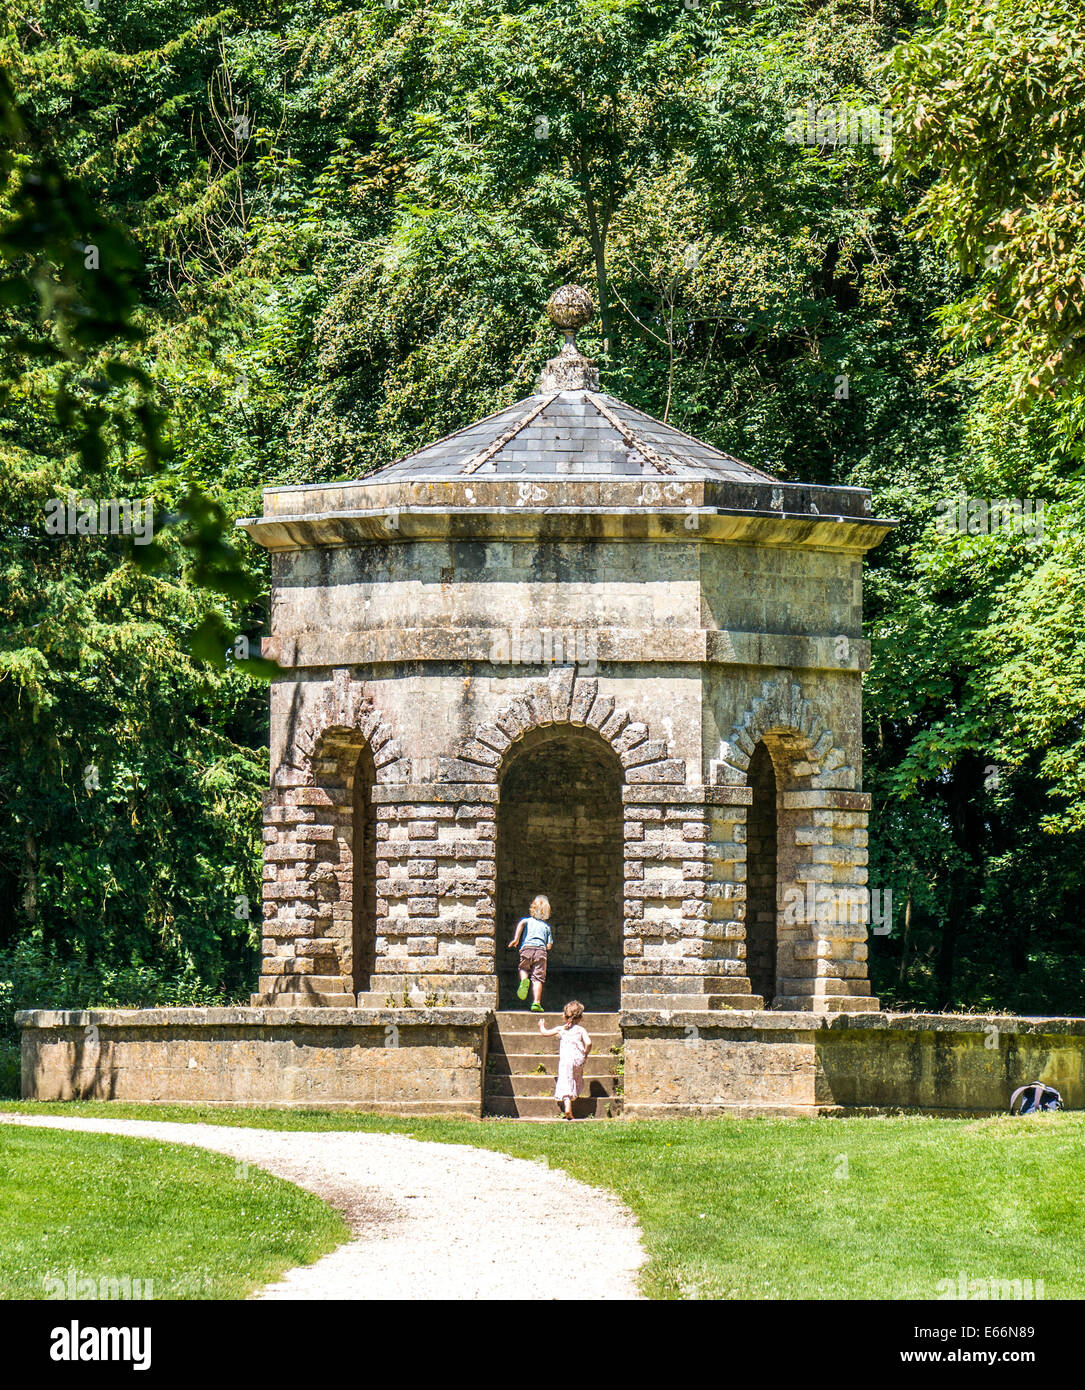 Two curious young children climbing the steps to The Hexagon folly, on the Bathurst Estate, Cirencester Park, Cotswolds, - Stock Image